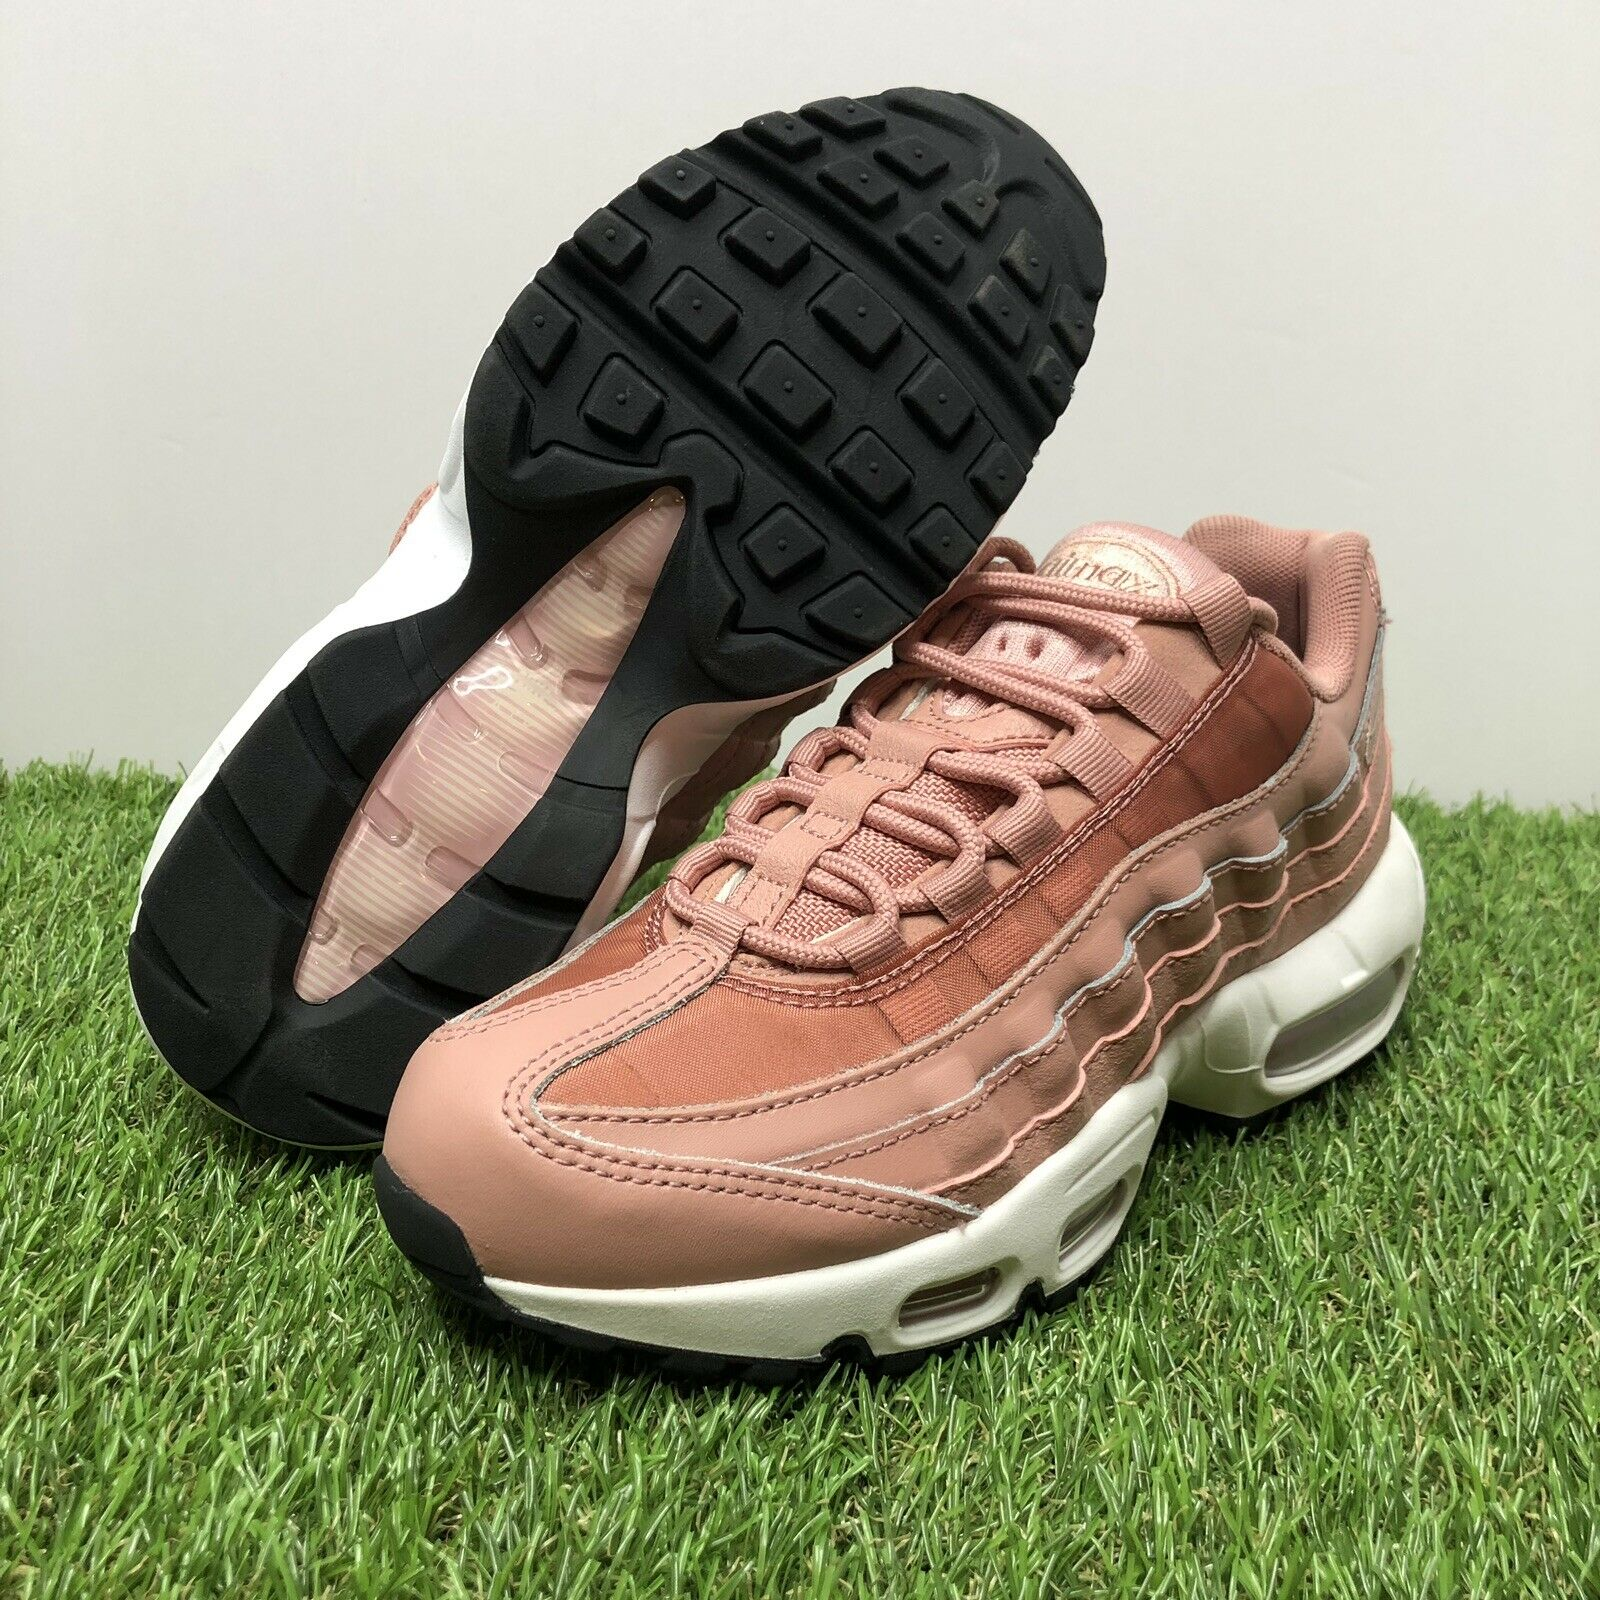 Nike Air Max 95 Running Shoes Women's Size 9 Rust Pink Particle Beige Black